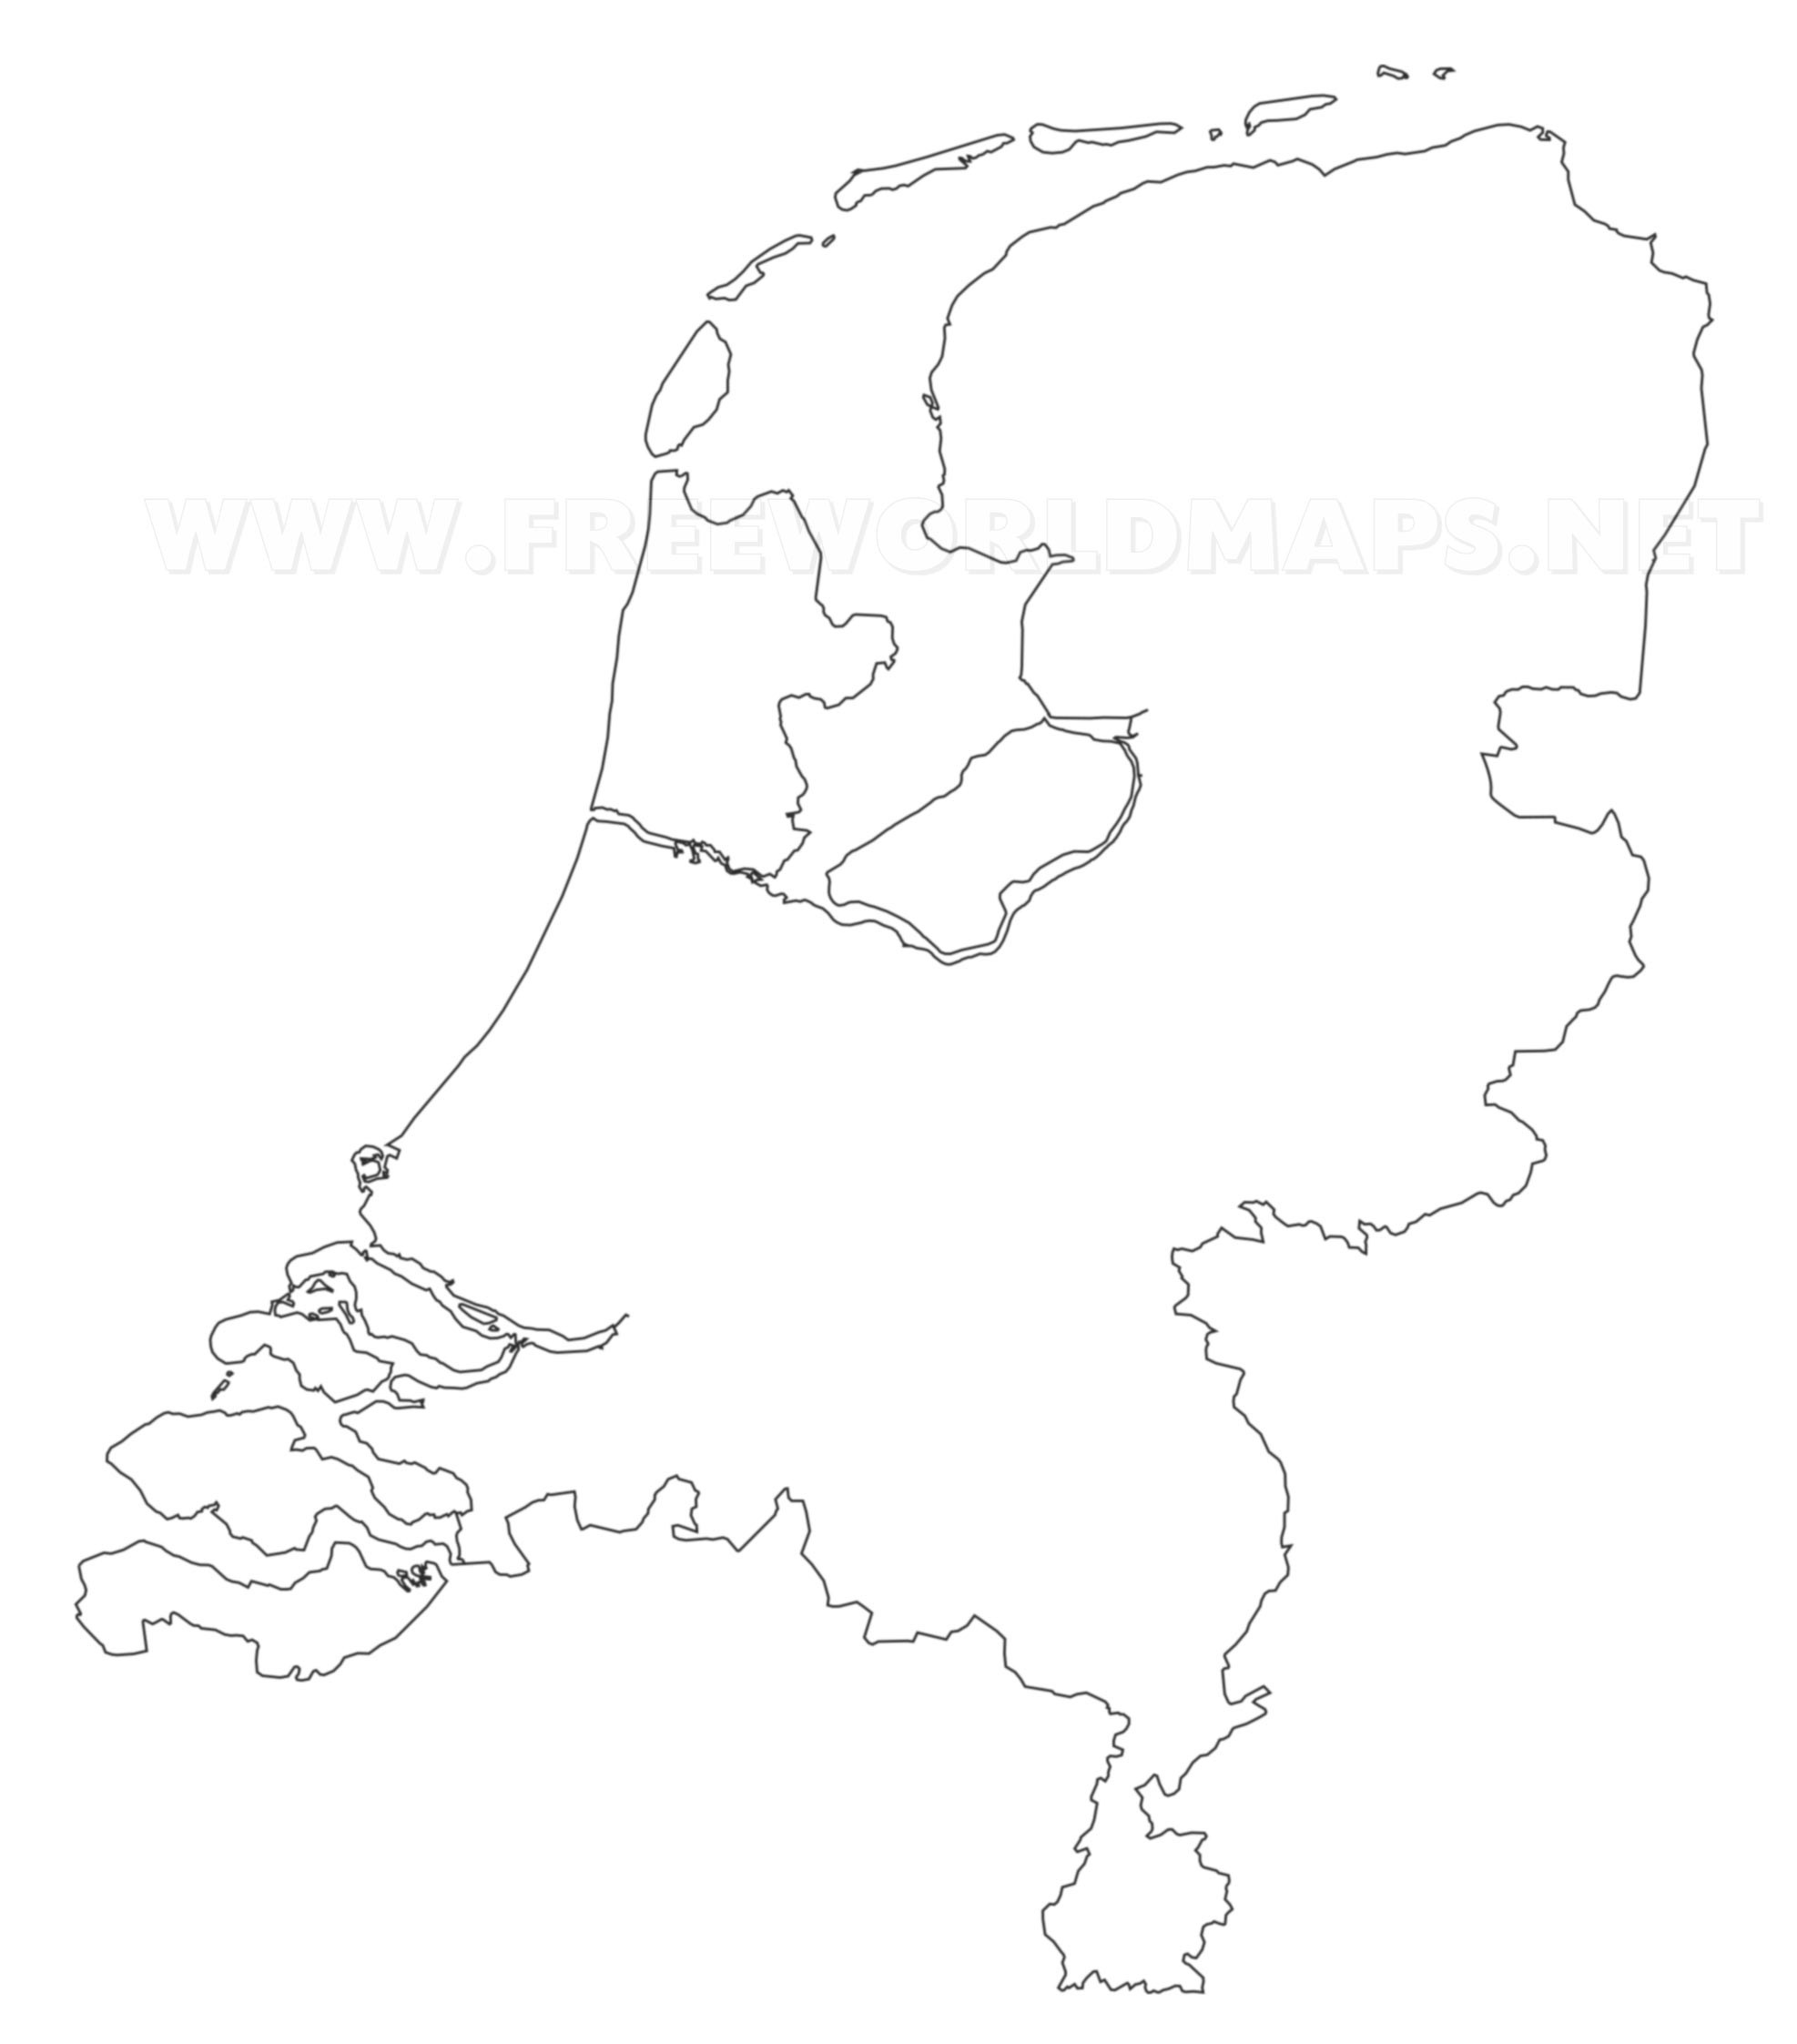 The Netherlands Political Map     The Netherlands outline map